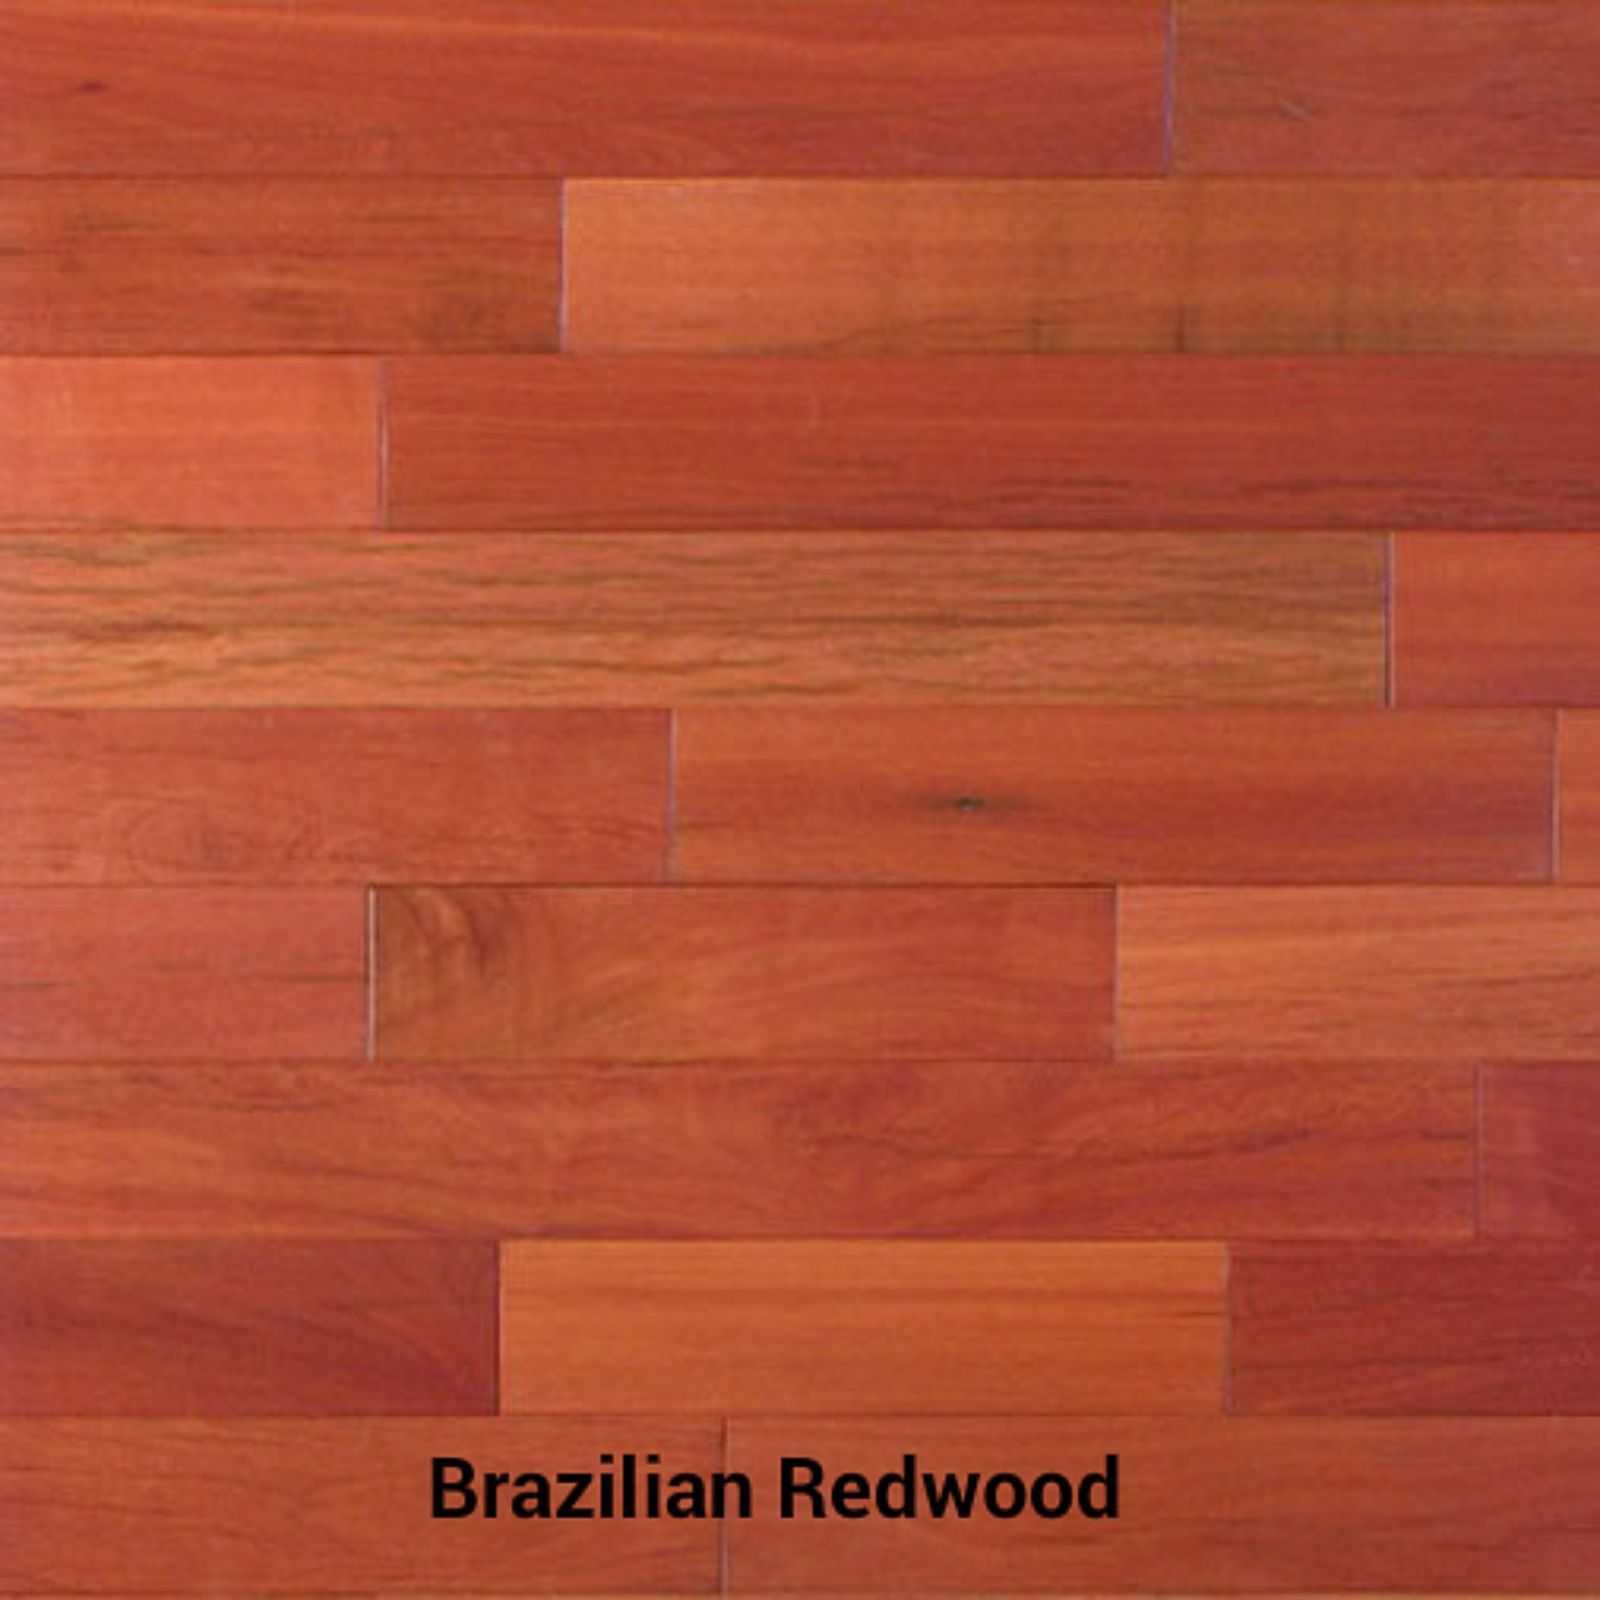 Brazilian Redwood Hardwood Flooring Hardwood Floors Hardwood Installing Hardwood Floors